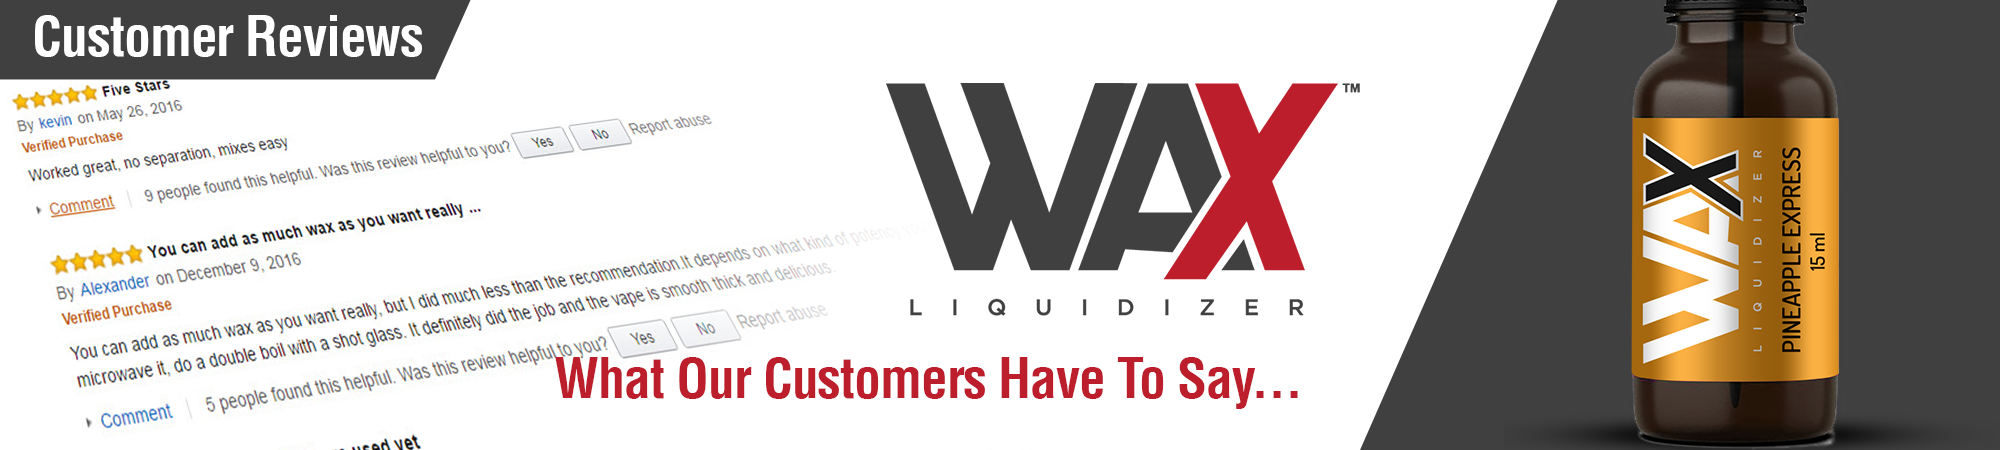 Wax Liquidizer - What Our Customers Have To Say | Wax Liquidizer